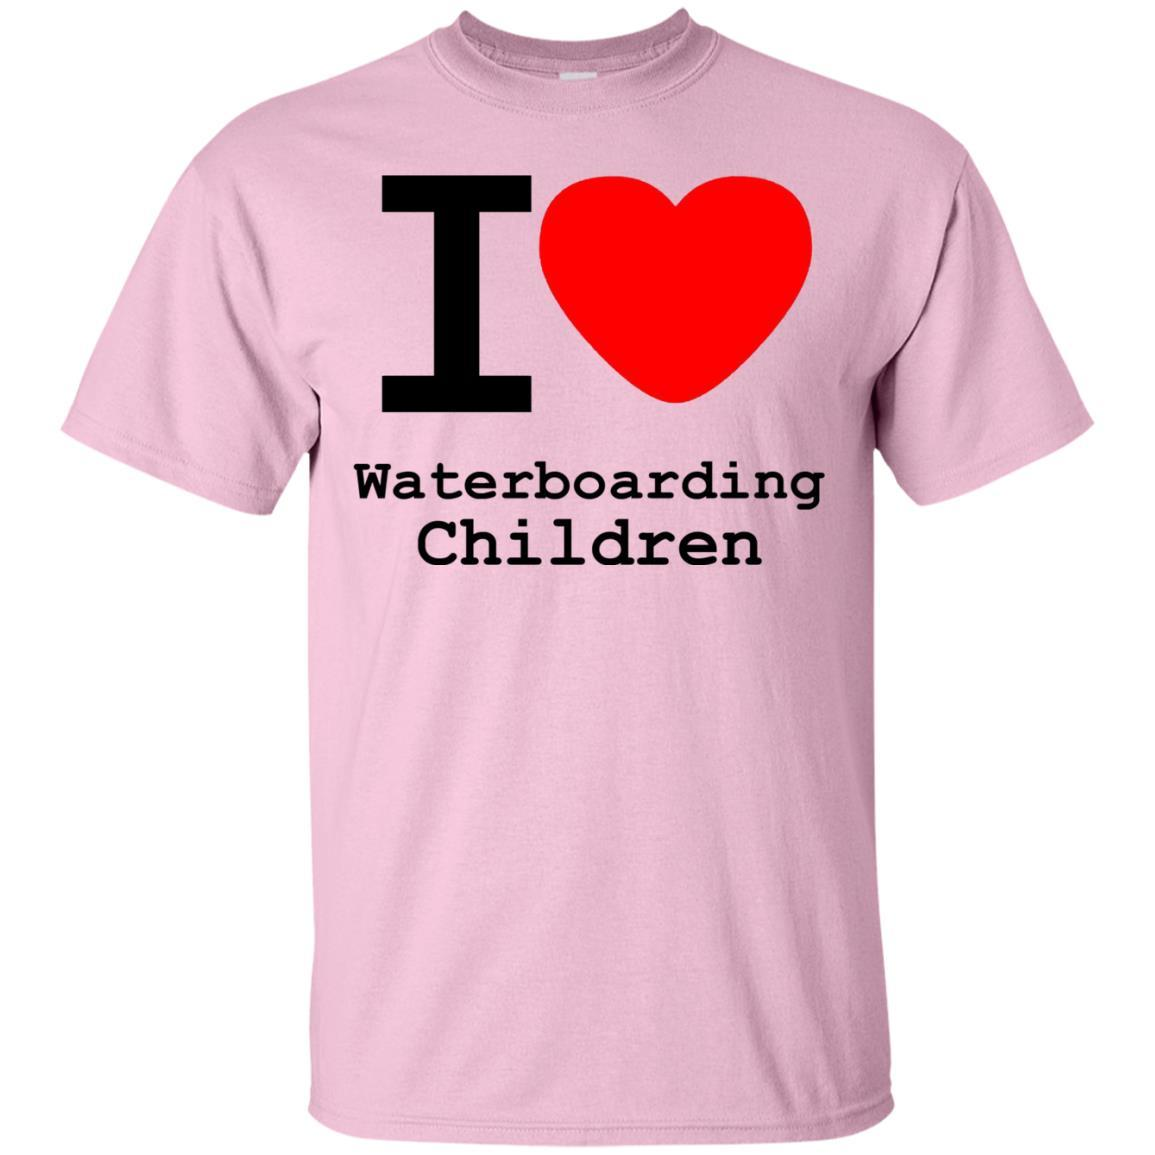 I love Waterboarding Children T-Shirt Light Pink / 5XL